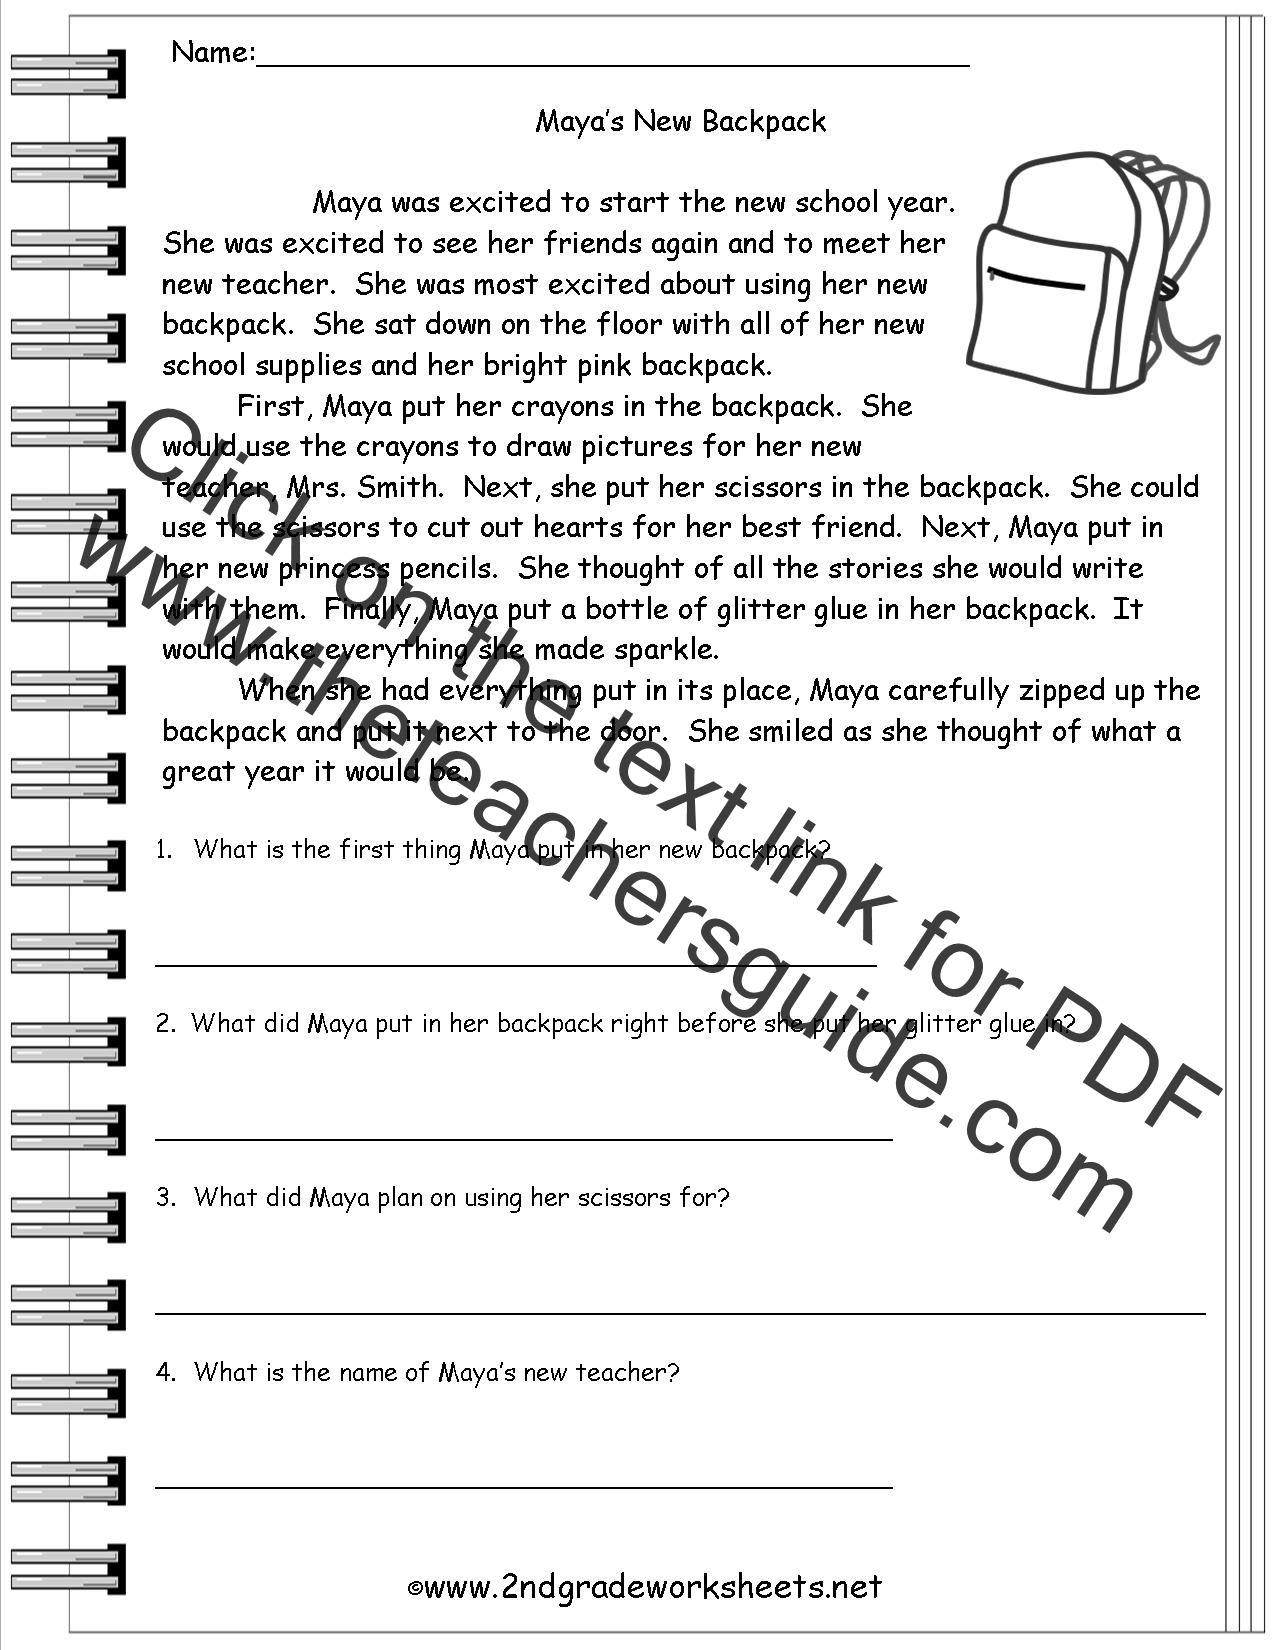 Reading Worksheeets – 2nd Grade Reading Worksheets